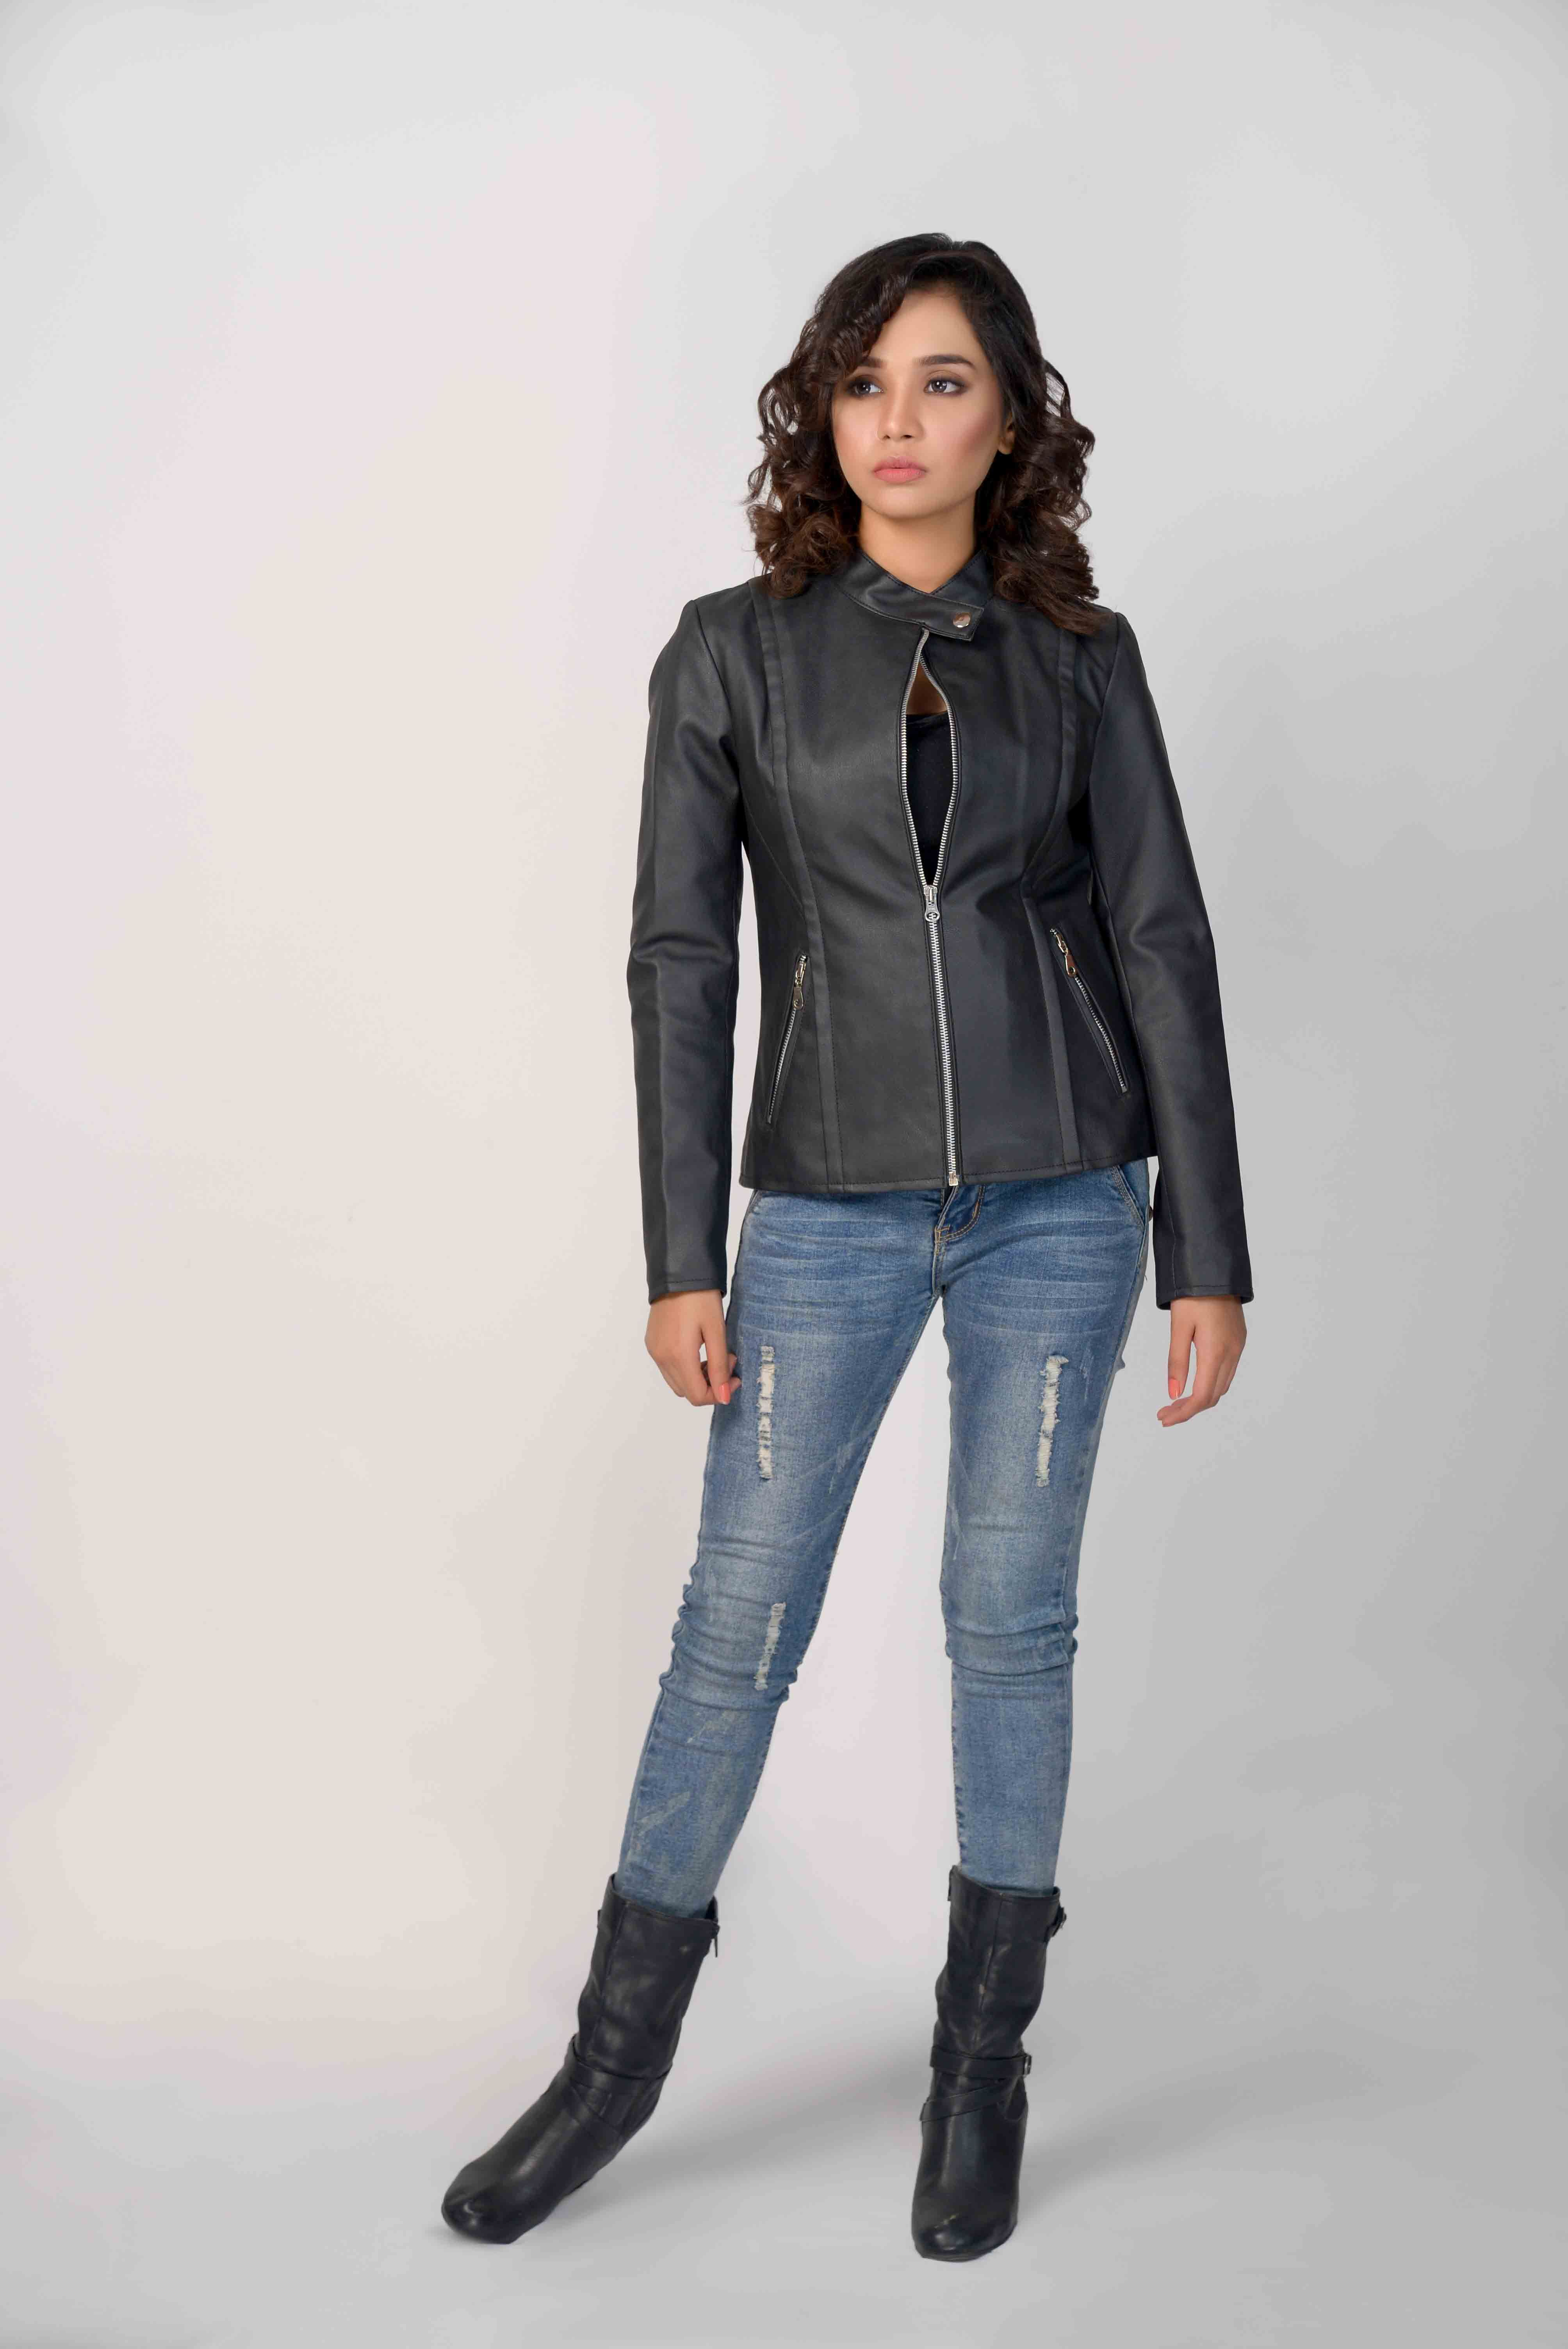 cc4ad71e Women love to wear Matte Black Leather Biker #Jacket to look like stylish biker  girls. Get it from The Leather Makers only for $196.99 #TheLeatherMakers ...